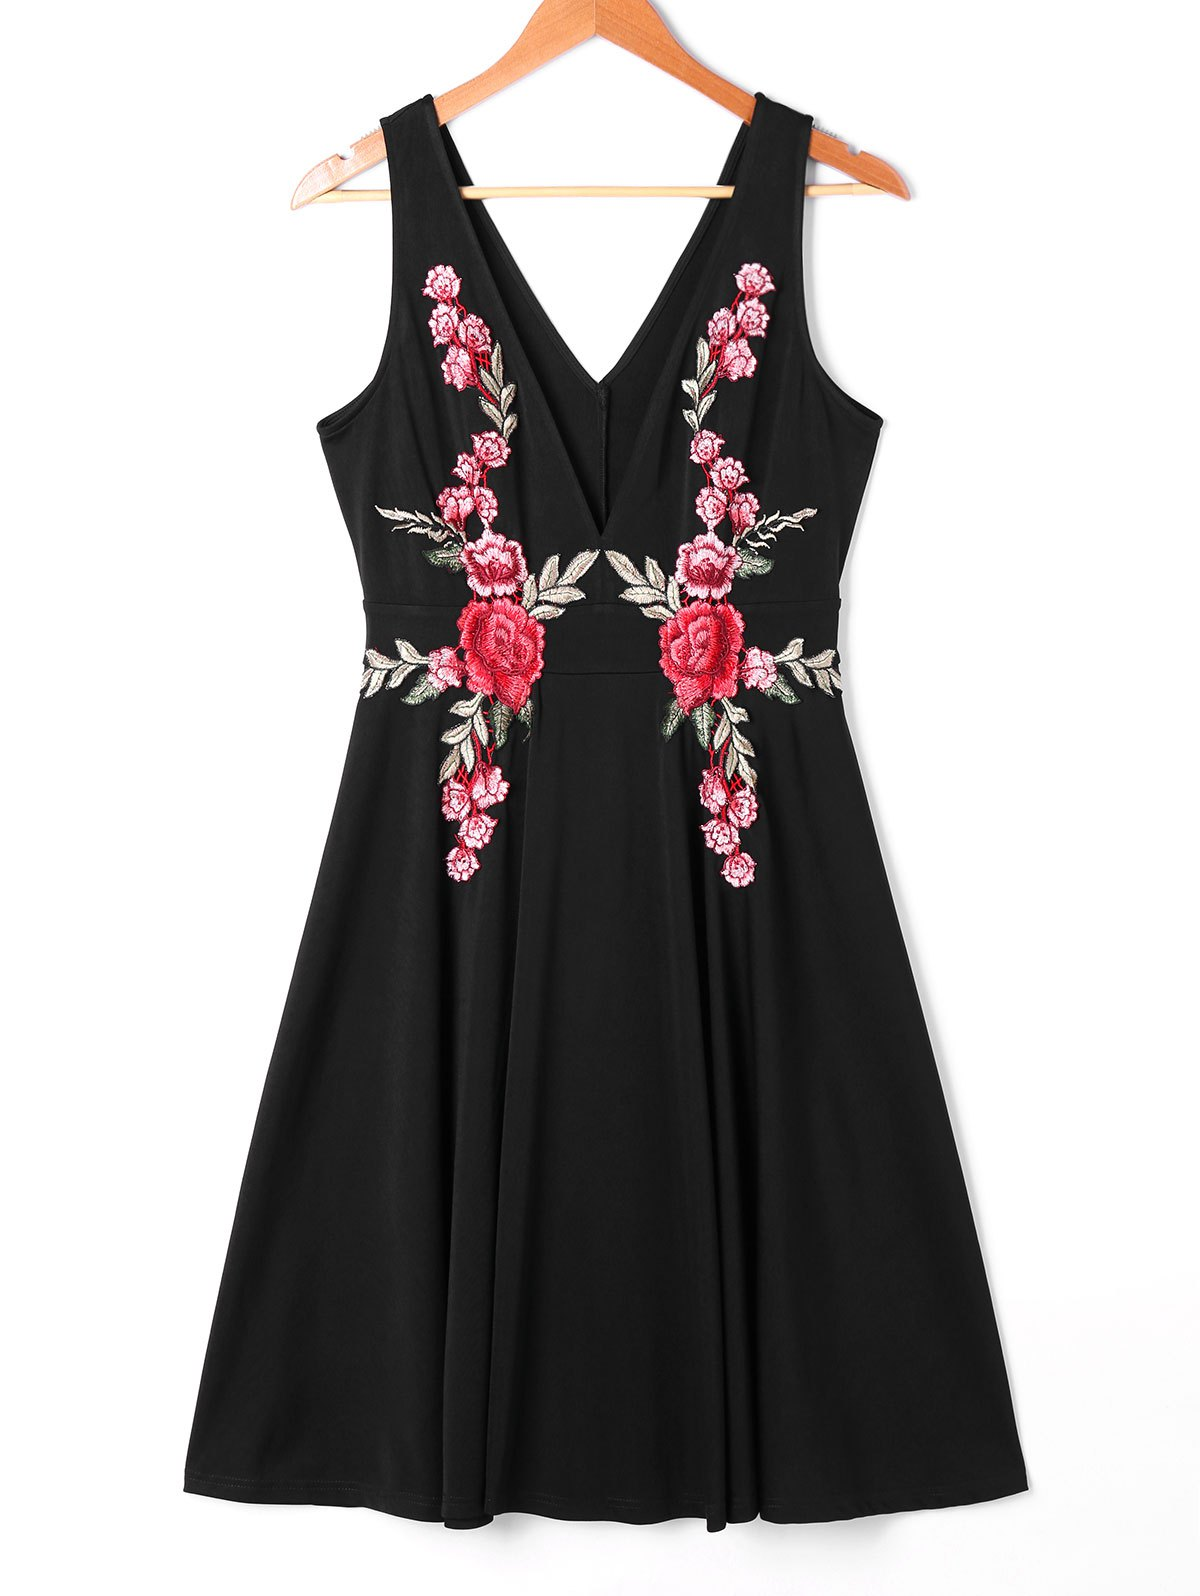 New Embroidered Plunging Neckline Swing Dress